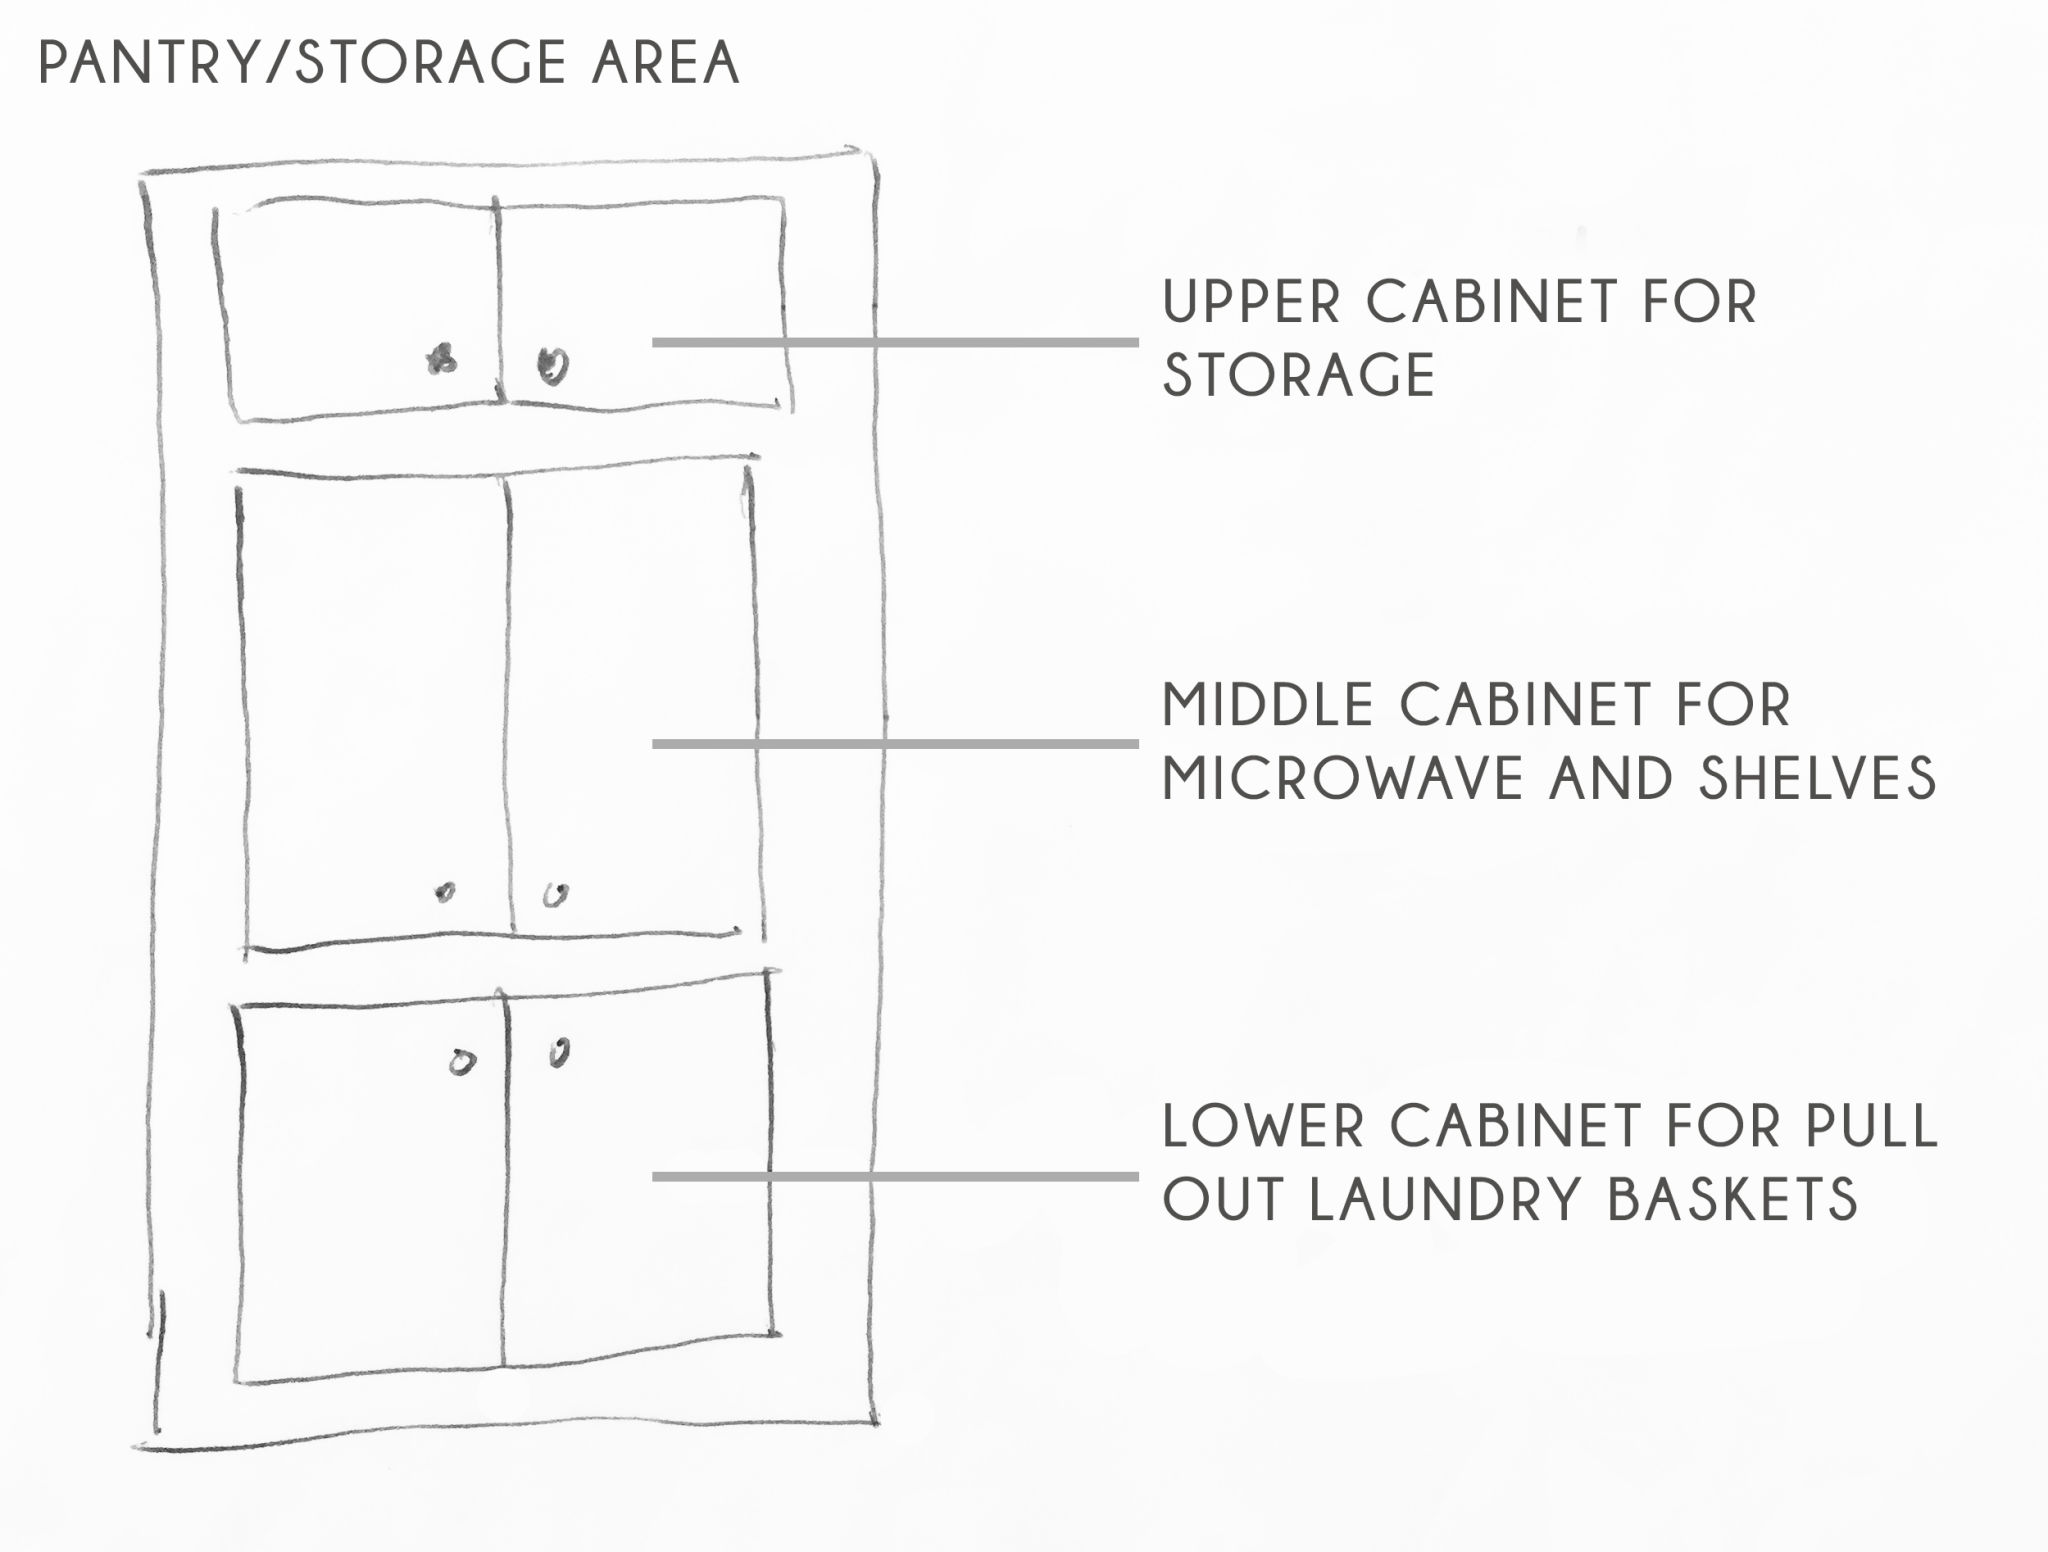 Bathroom_Storage_Drawing_Ginny_Macdonald_With-Copy-1024x776@2x